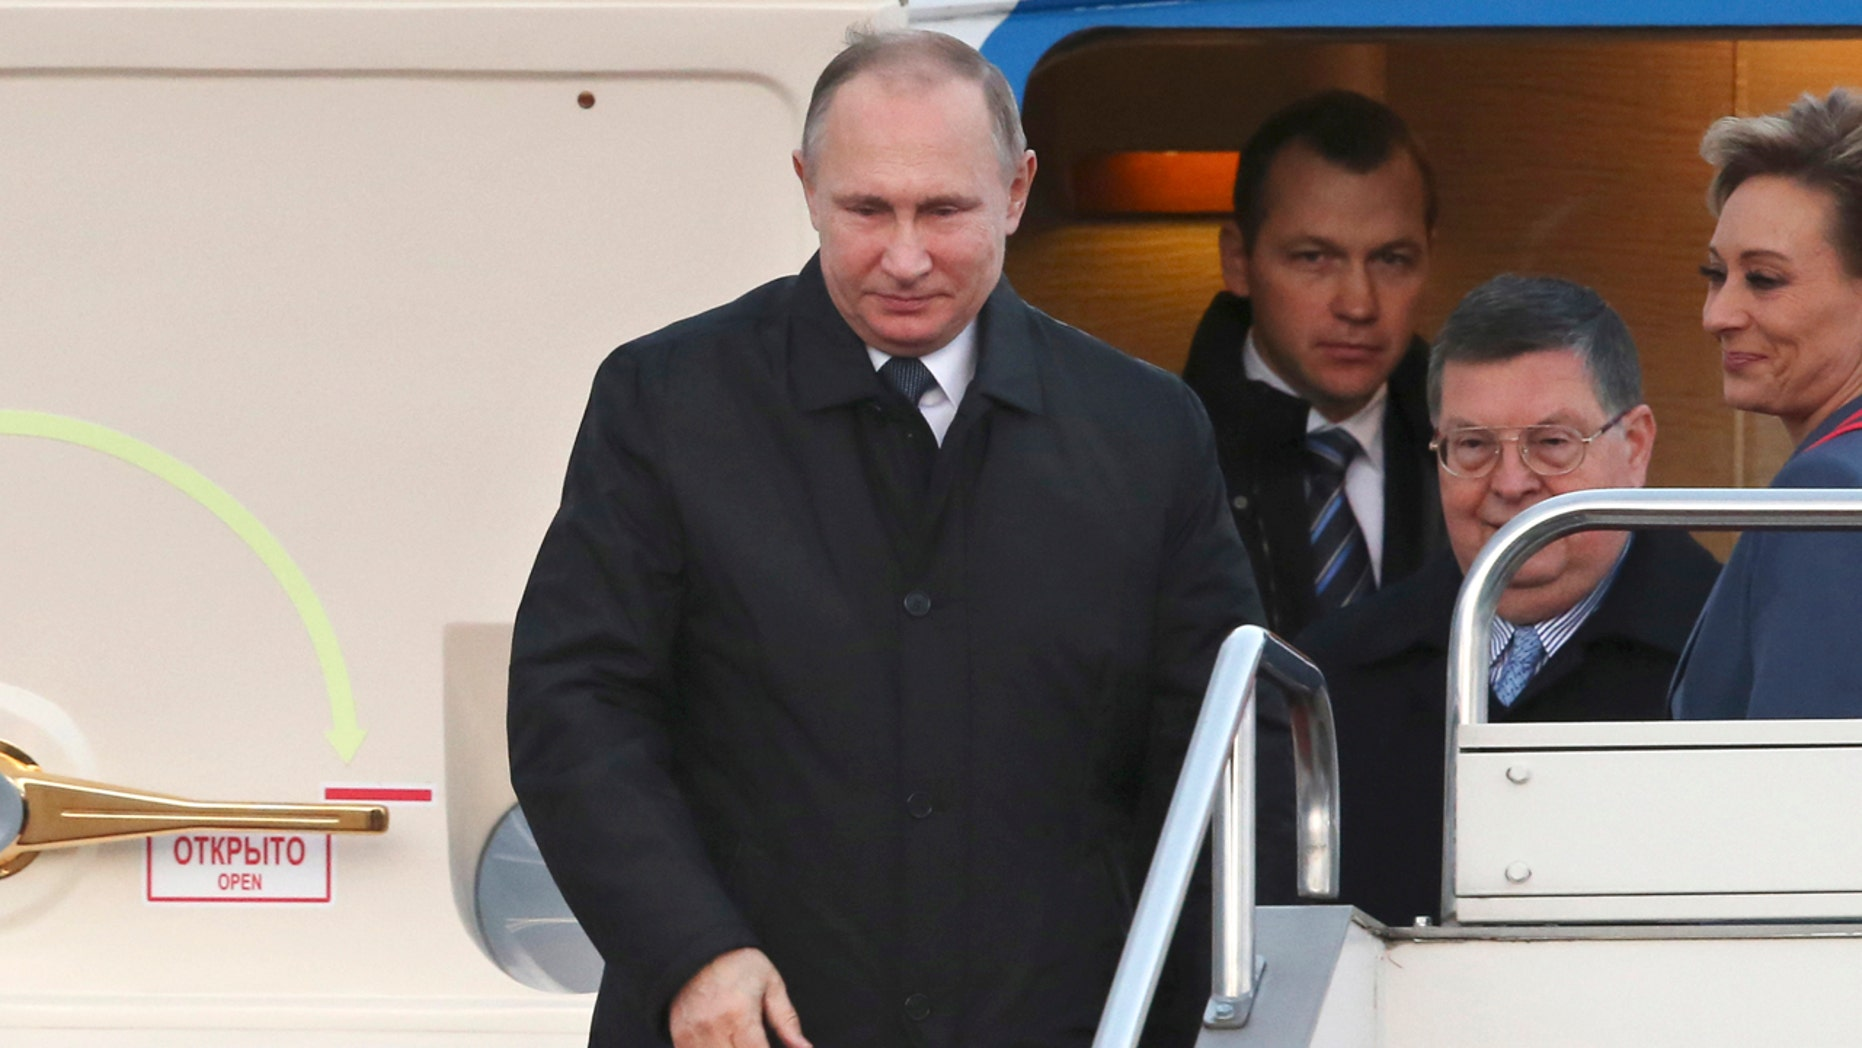 Russian President Vladimir Putin arrives at Yamaguchiube Airport in Ube, western Japan.